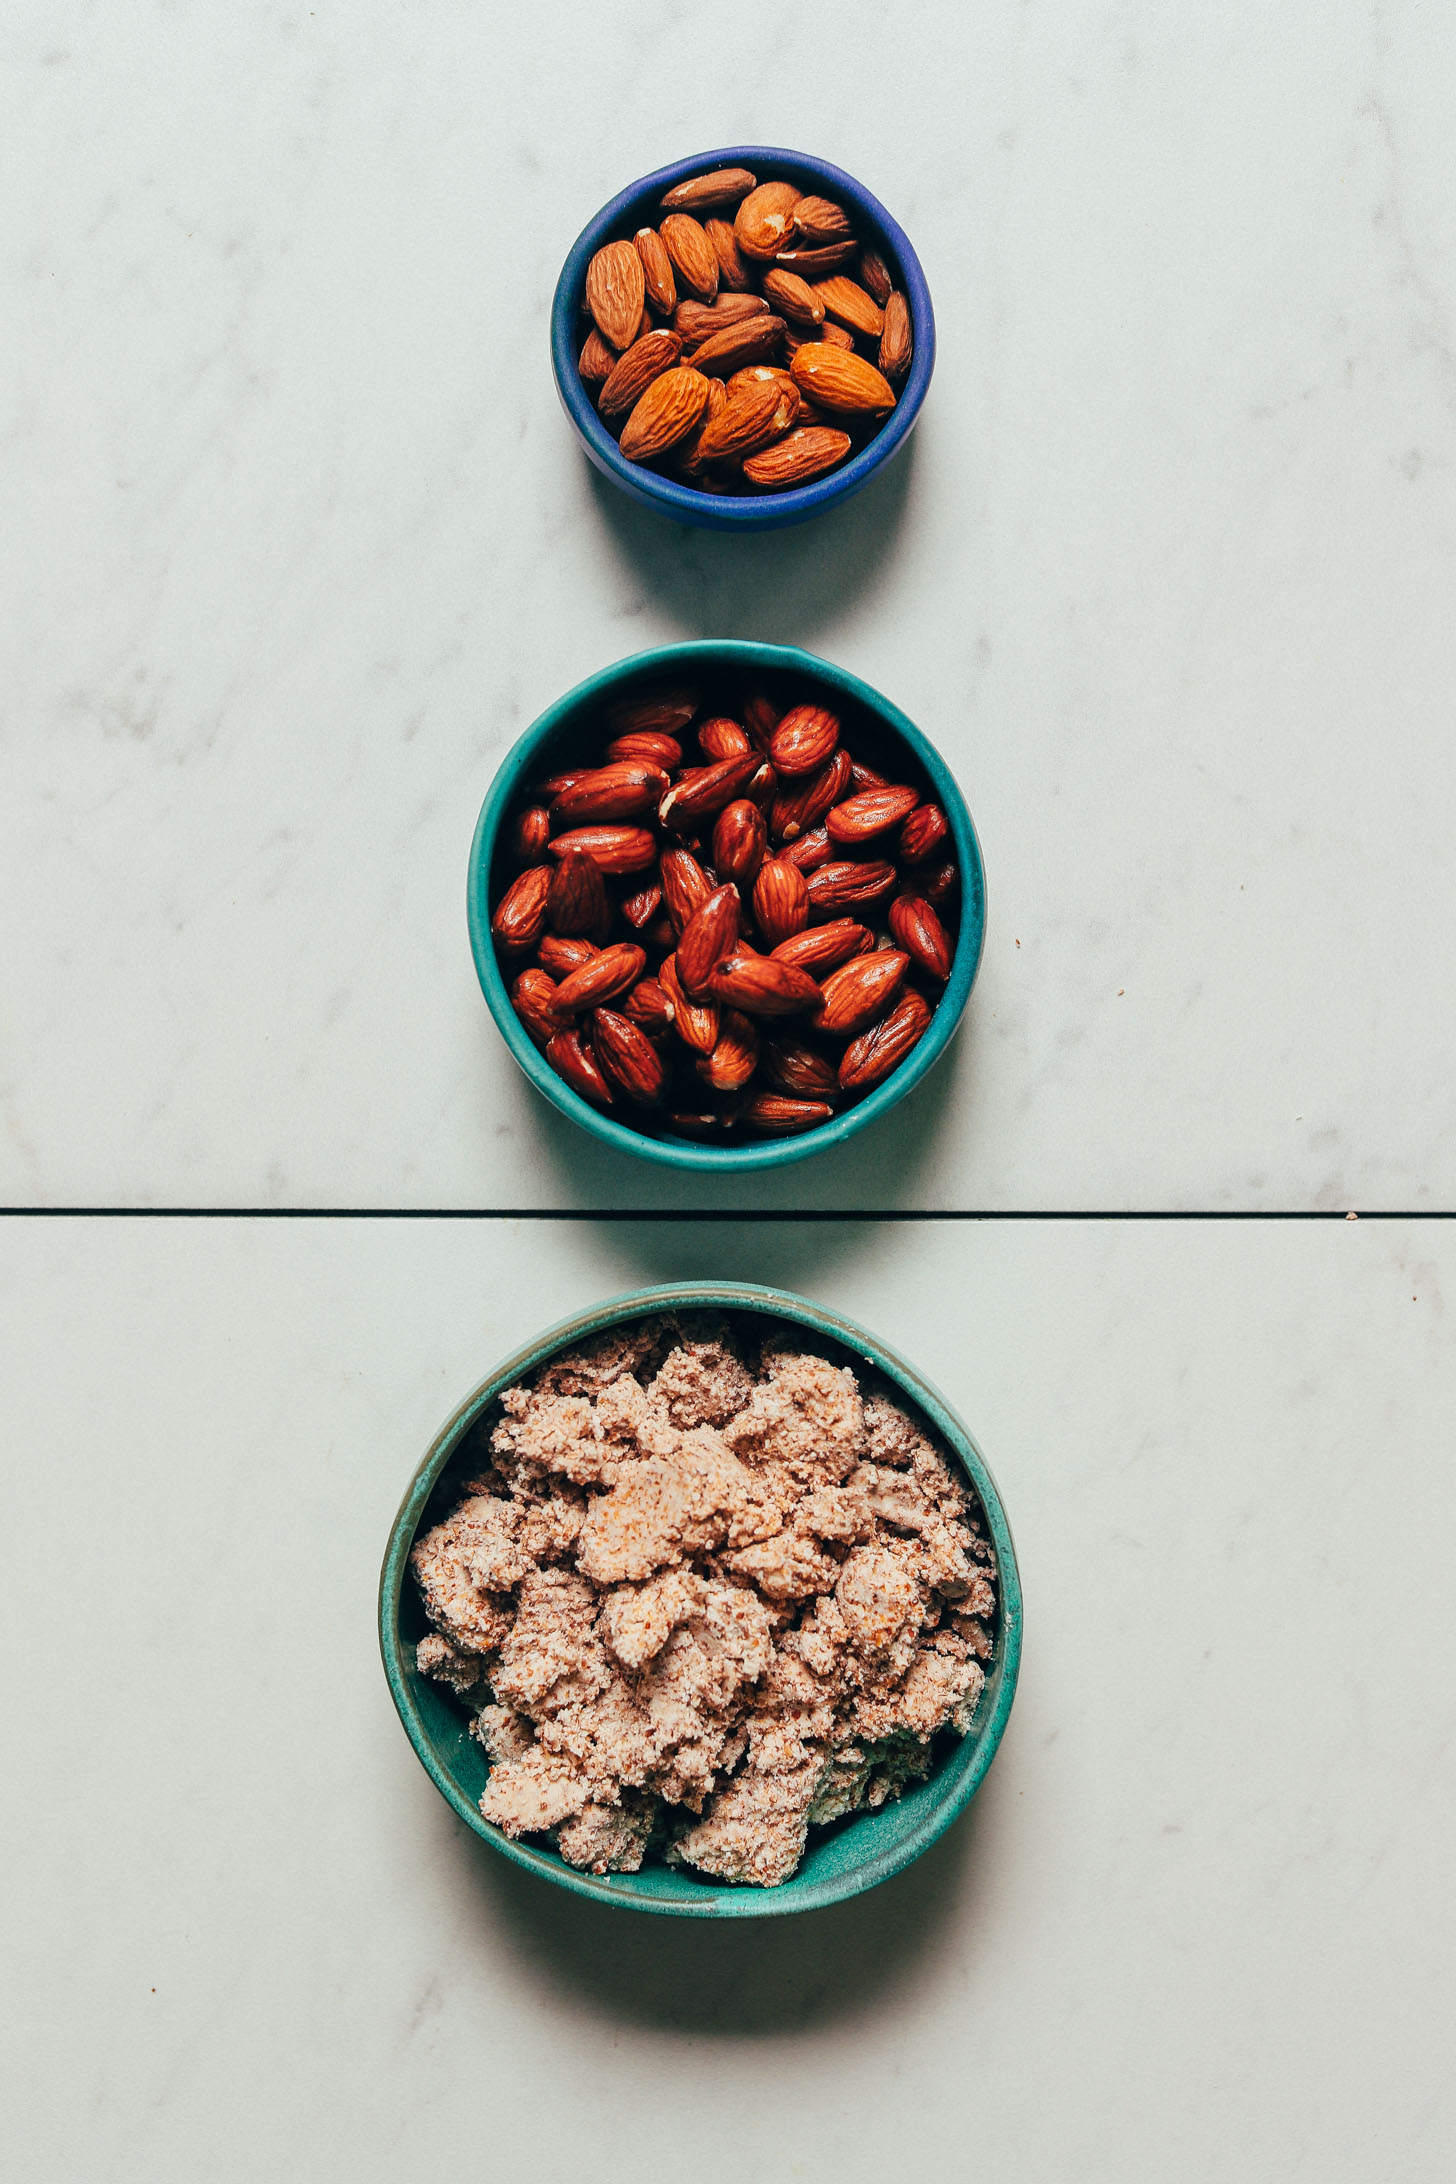 Bowls of raw almonds, soaked almonds, and almond pulp for our tutorial on How to Make Almond Meal from Almond Pulp